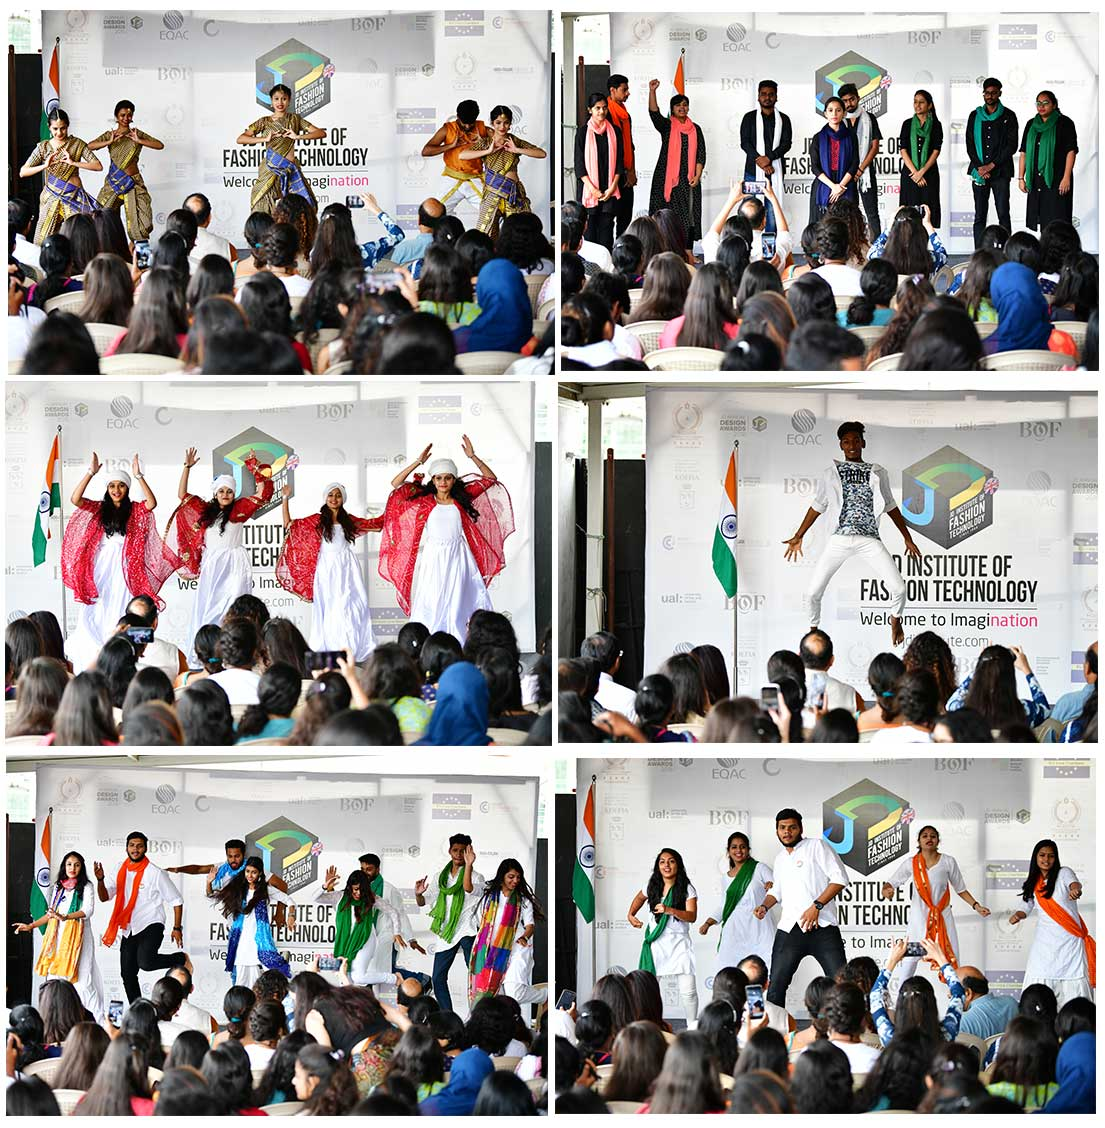 72nd Independence Day Celebrations independence day - independence4 - 72nd Independence Day Celebrations at JD Institute, Bangalore, India